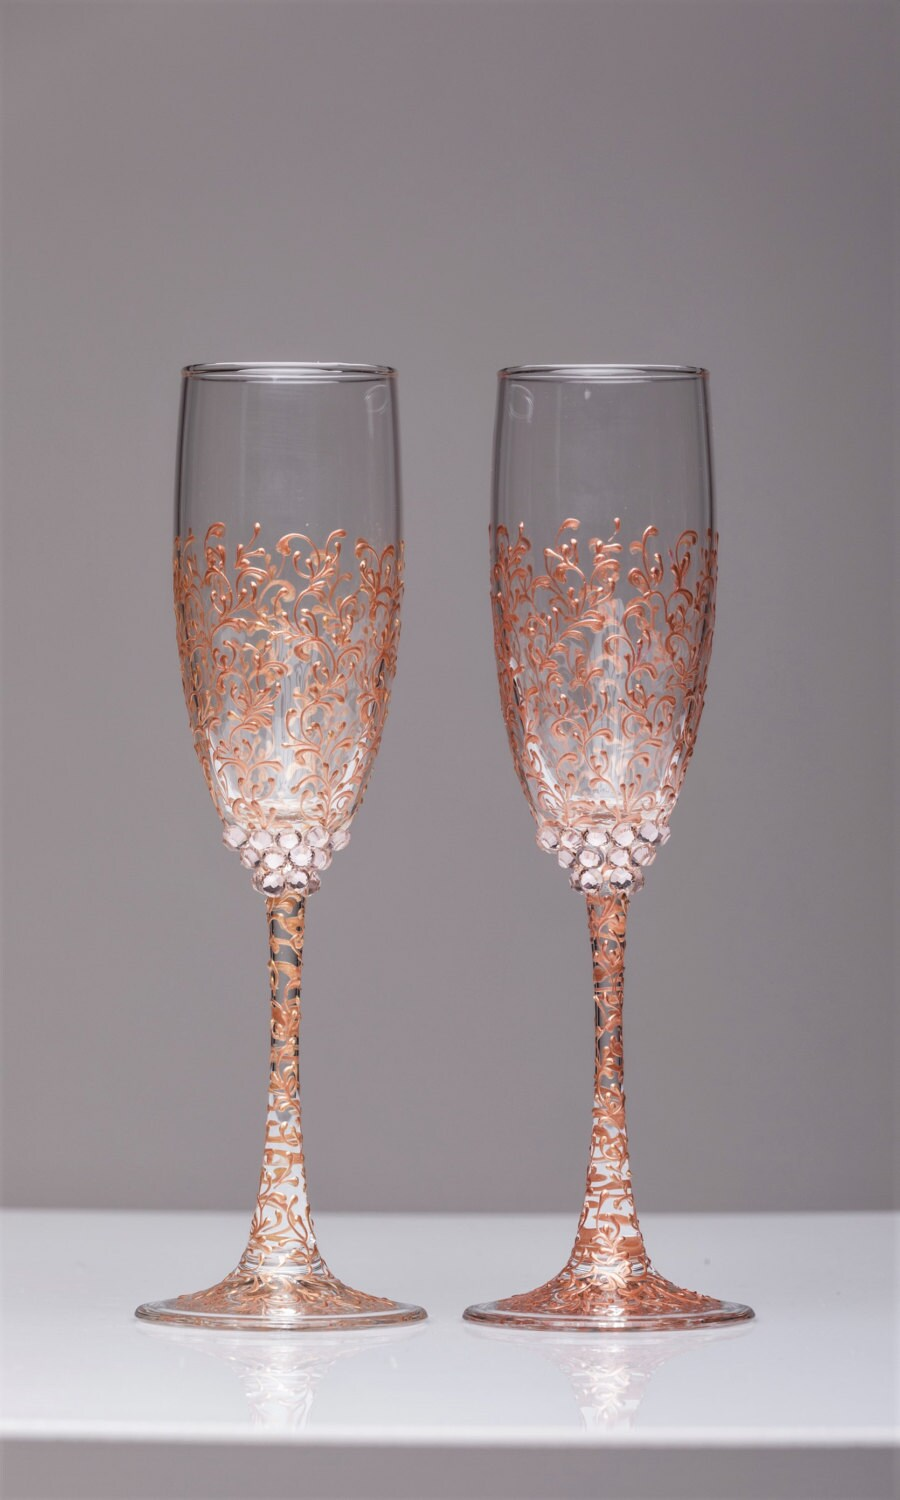 Rose-Coloured Glasses for the Bride